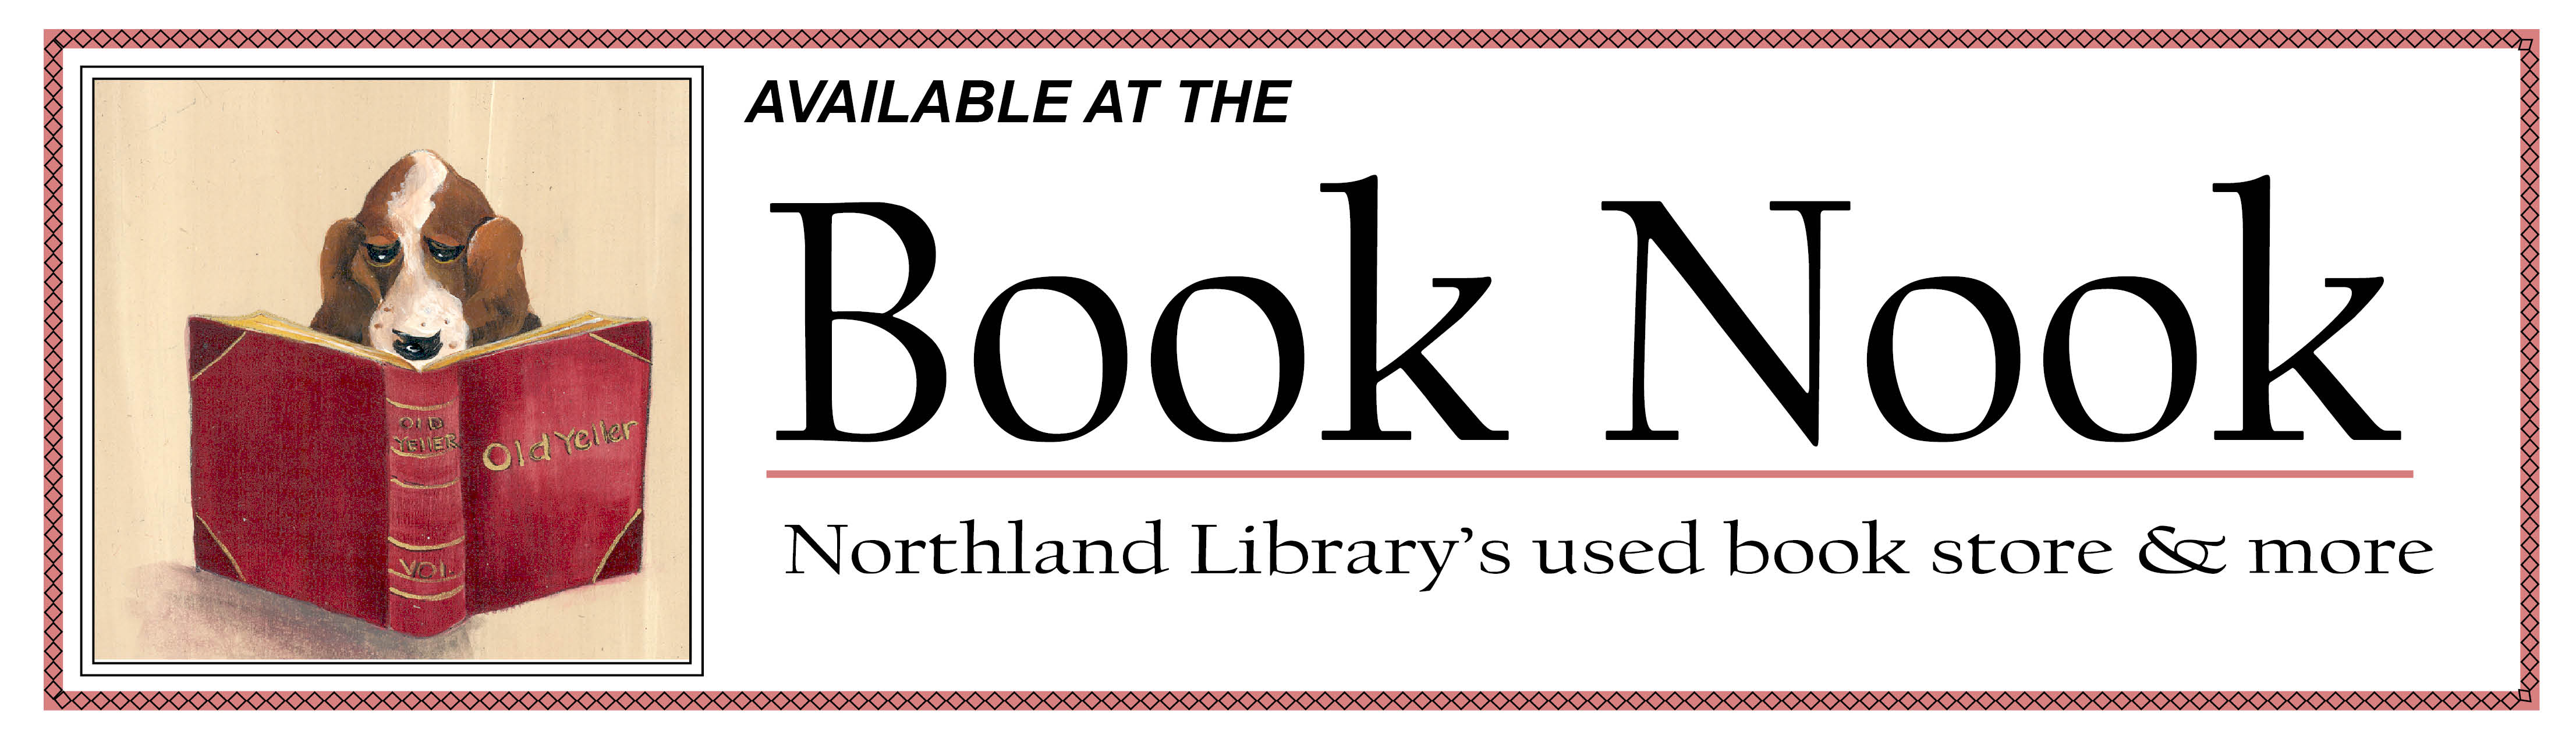 Available at the Book Nook, Northland Library's used book store and more